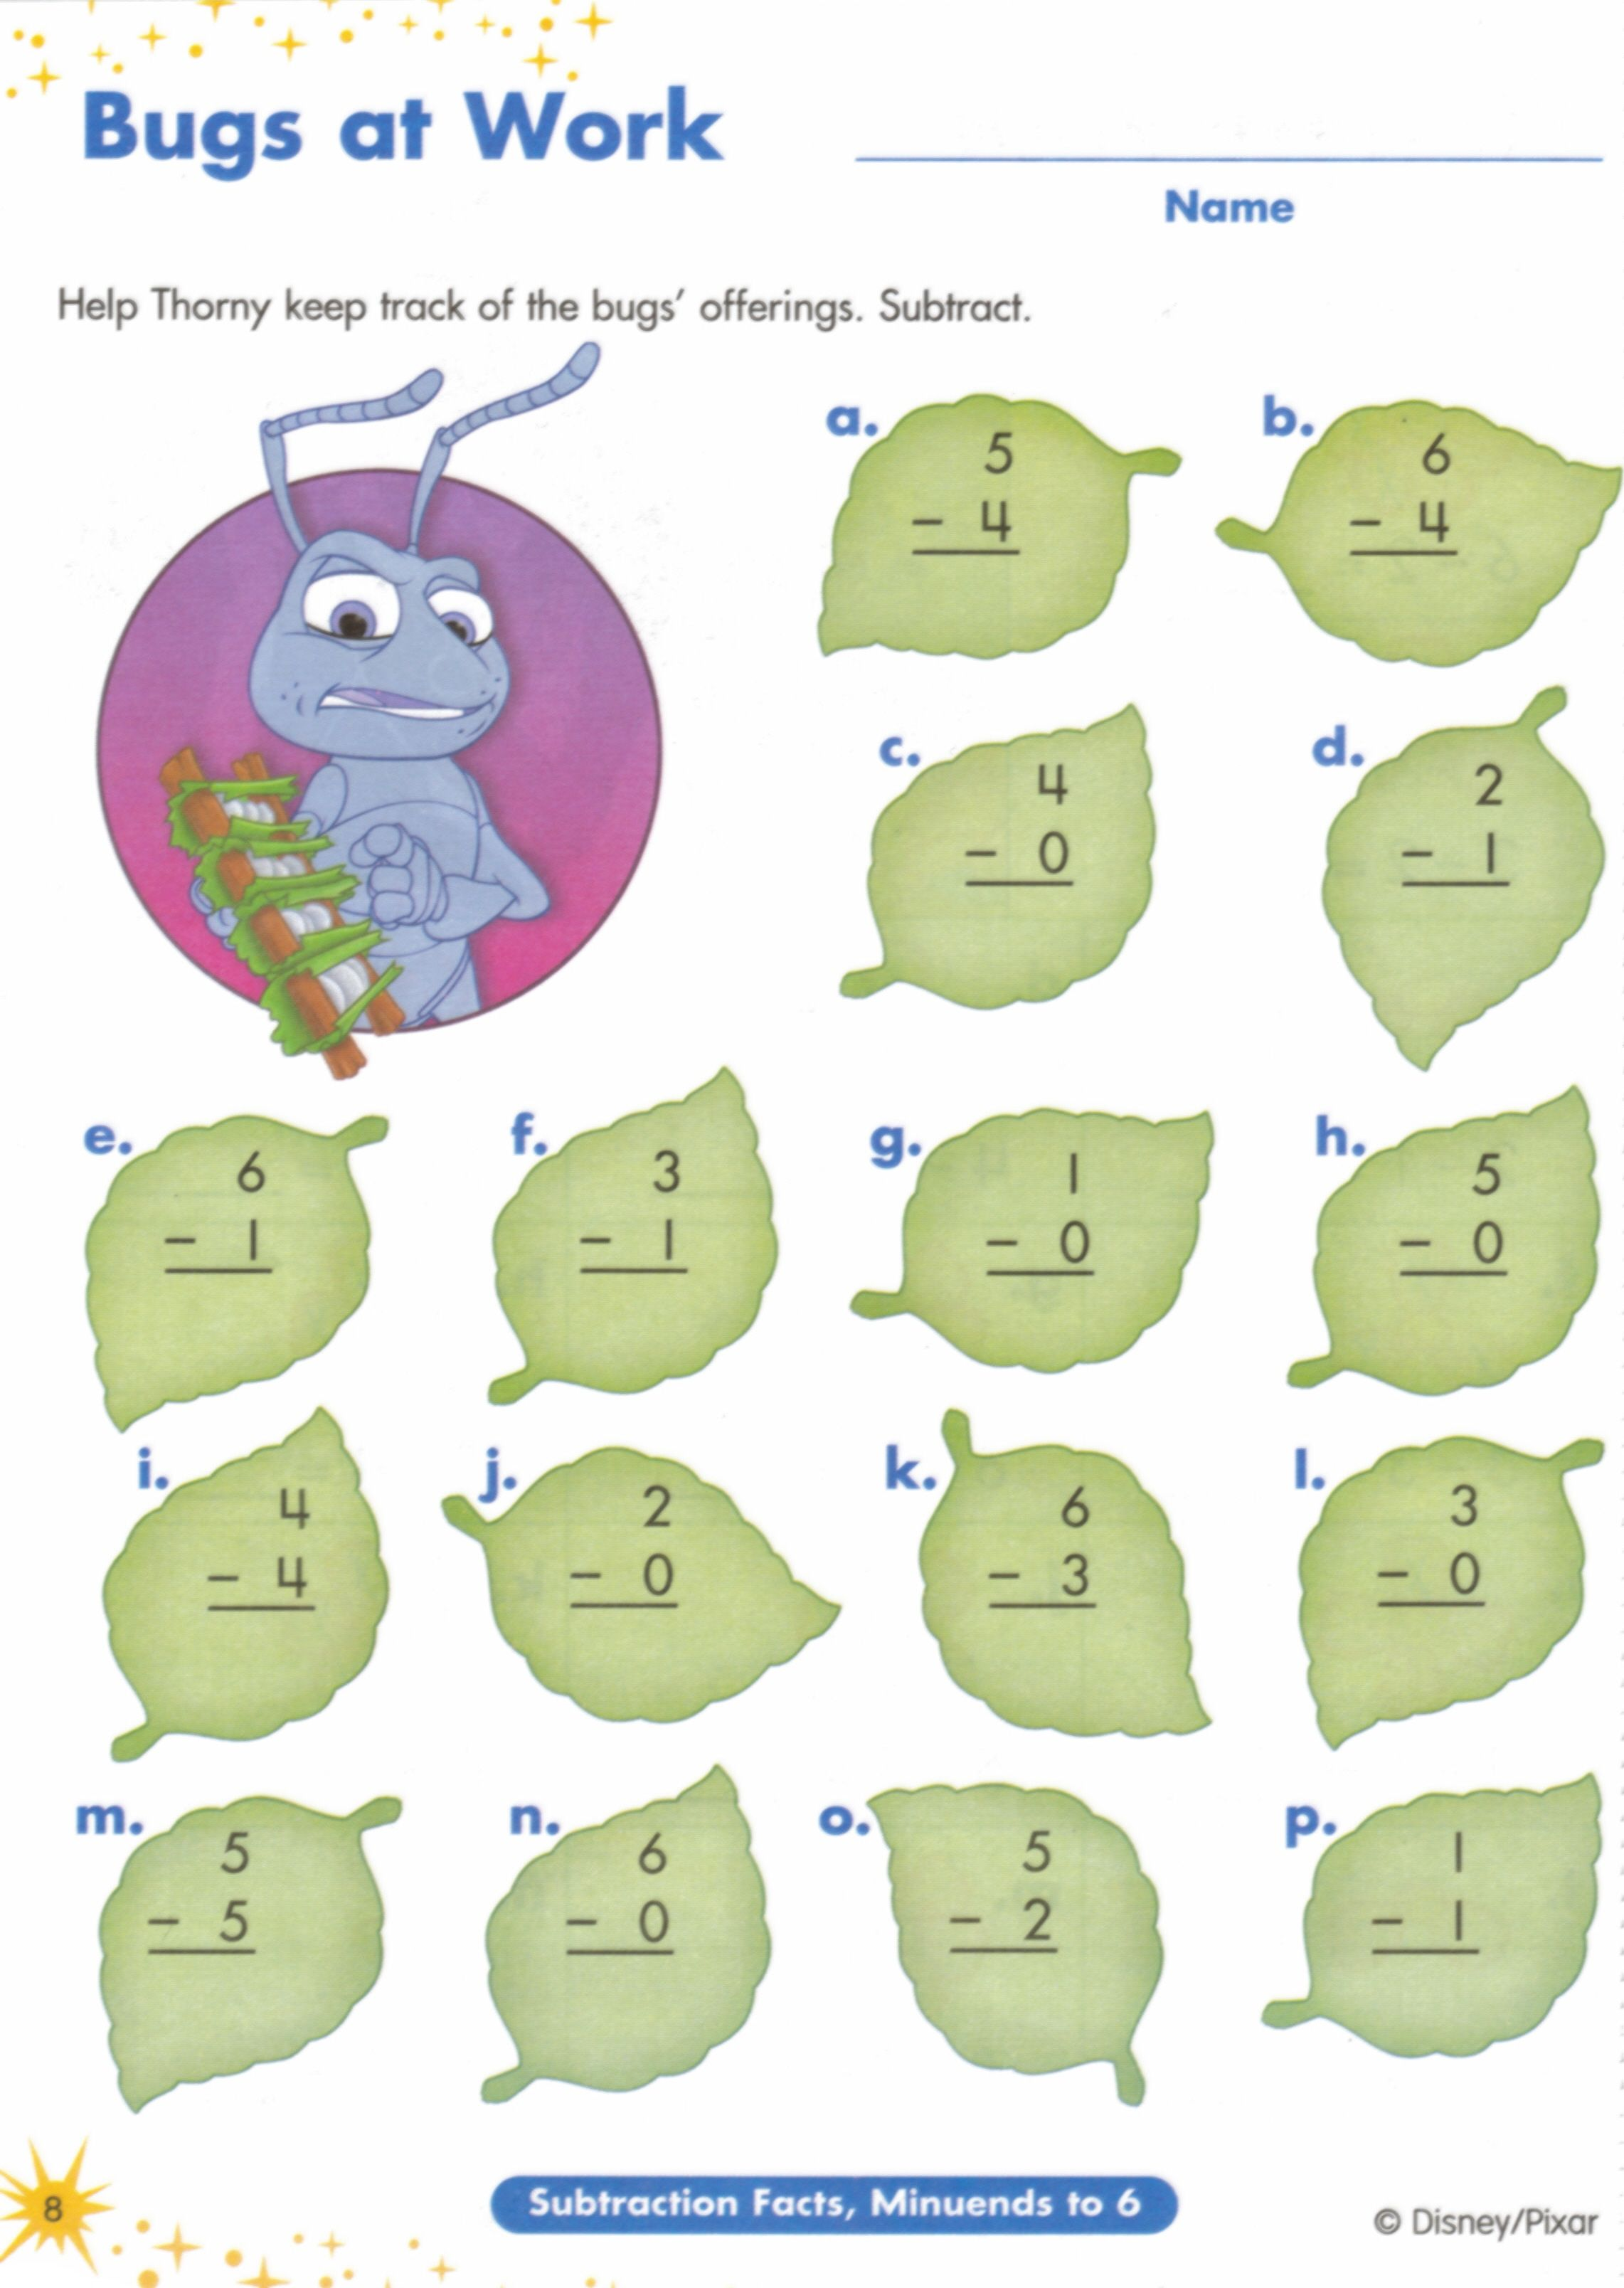 Weirdmailus  Gorgeous  Images About Worksheets On Pinterest  Fun Facts For Kids  With Likable  Images About Worksheets On Pinterest  Fun Facts For Kids Earth Day Worksheets And Jungles With Appealing Long O Sound Worksheets Also Lytic And Lysogenic Cycle Worksheet In Addition Multiply By  Worksheet And Finite Math Worksheets As Well As St Grade Cause And Effect Worksheets Additionally Real Estate Investment Worksheet From Pinterestcom With Weirdmailus  Likable  Images About Worksheets On Pinterest  Fun Facts For Kids  With Appealing  Images About Worksheets On Pinterest  Fun Facts For Kids Earth Day Worksheets And Jungles And Gorgeous Long O Sound Worksheets Also Lytic And Lysogenic Cycle Worksheet In Addition Multiply By  Worksheet From Pinterestcom